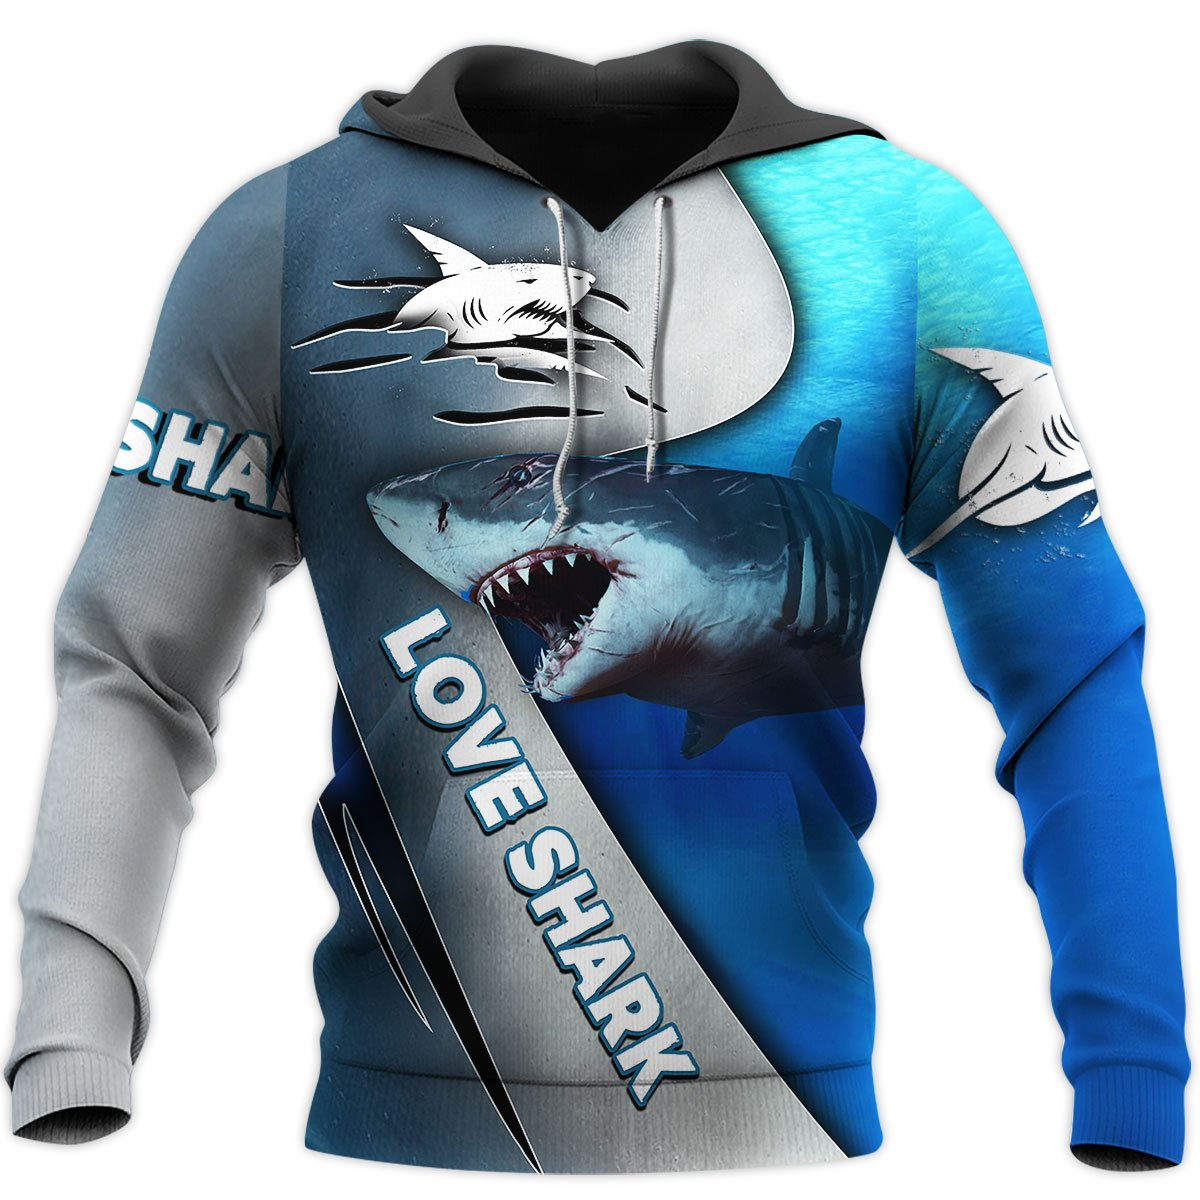 Love Shark 3D All Over Printed Shirts For Men and Women TT072053-Apparel-TT-Hoodie-S-Vibe Cosy™